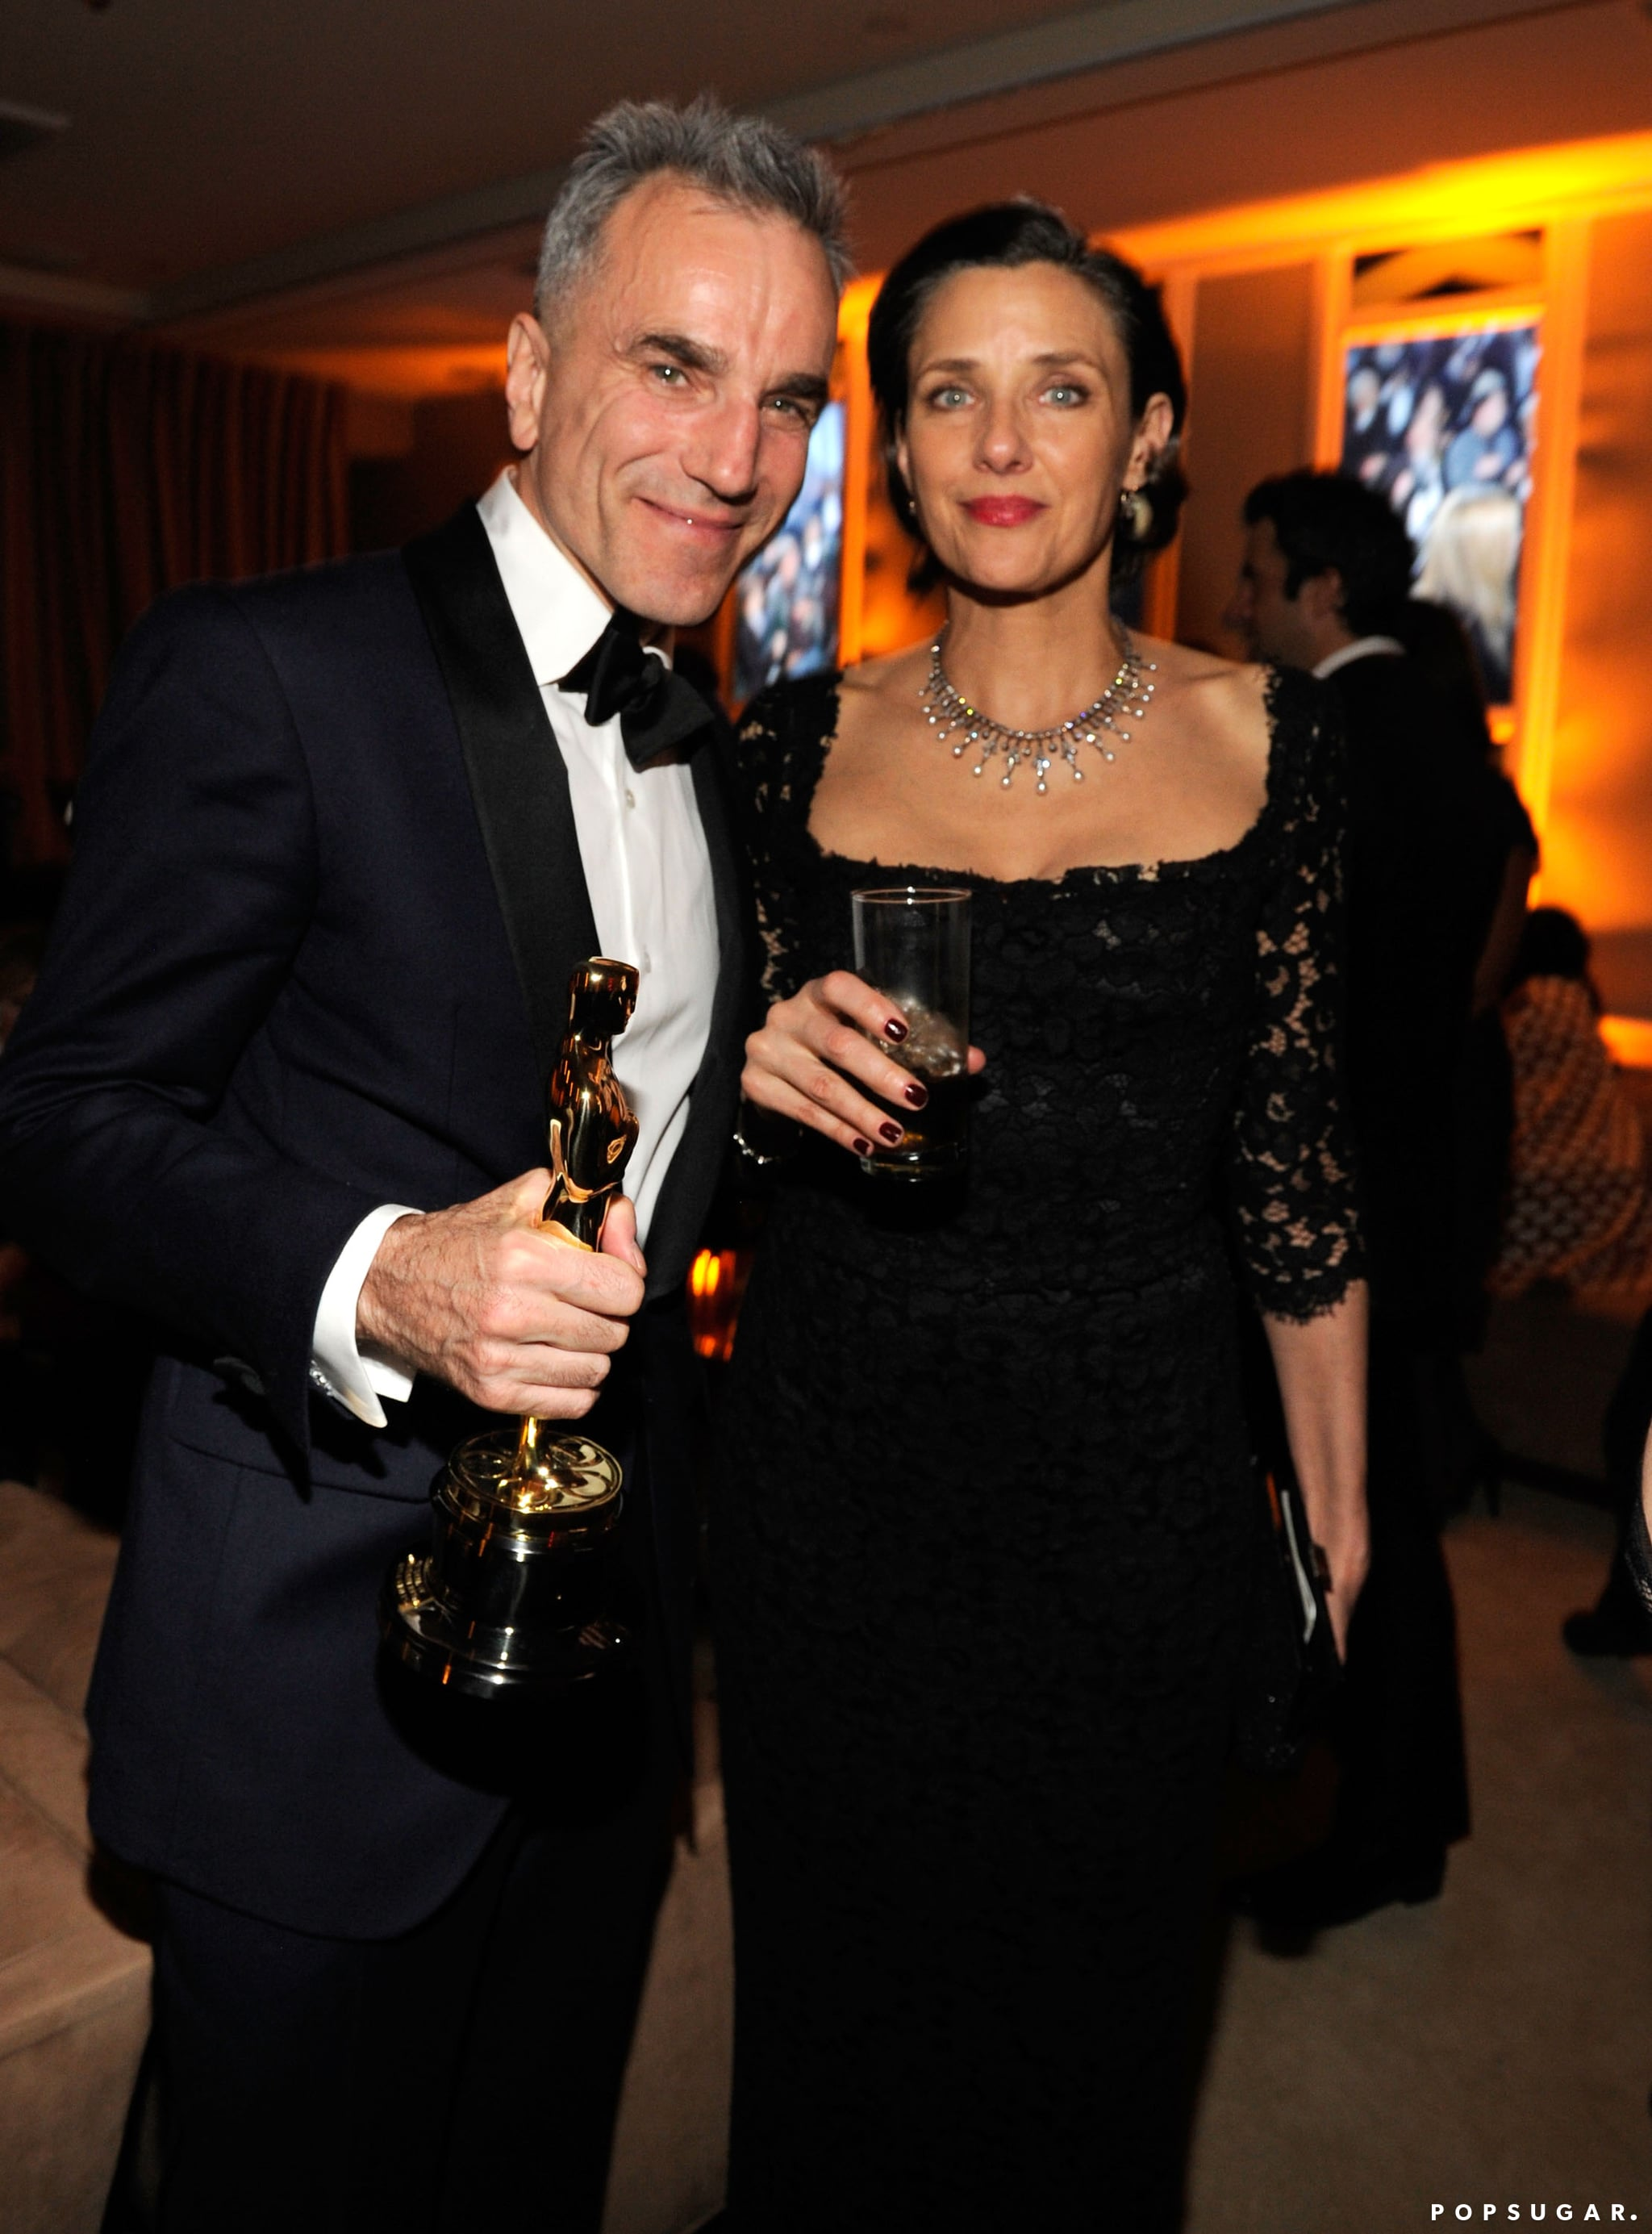 Daniel Day Lewis and Rebecca Miller made their way into the Vanity Fair after-party in LA.